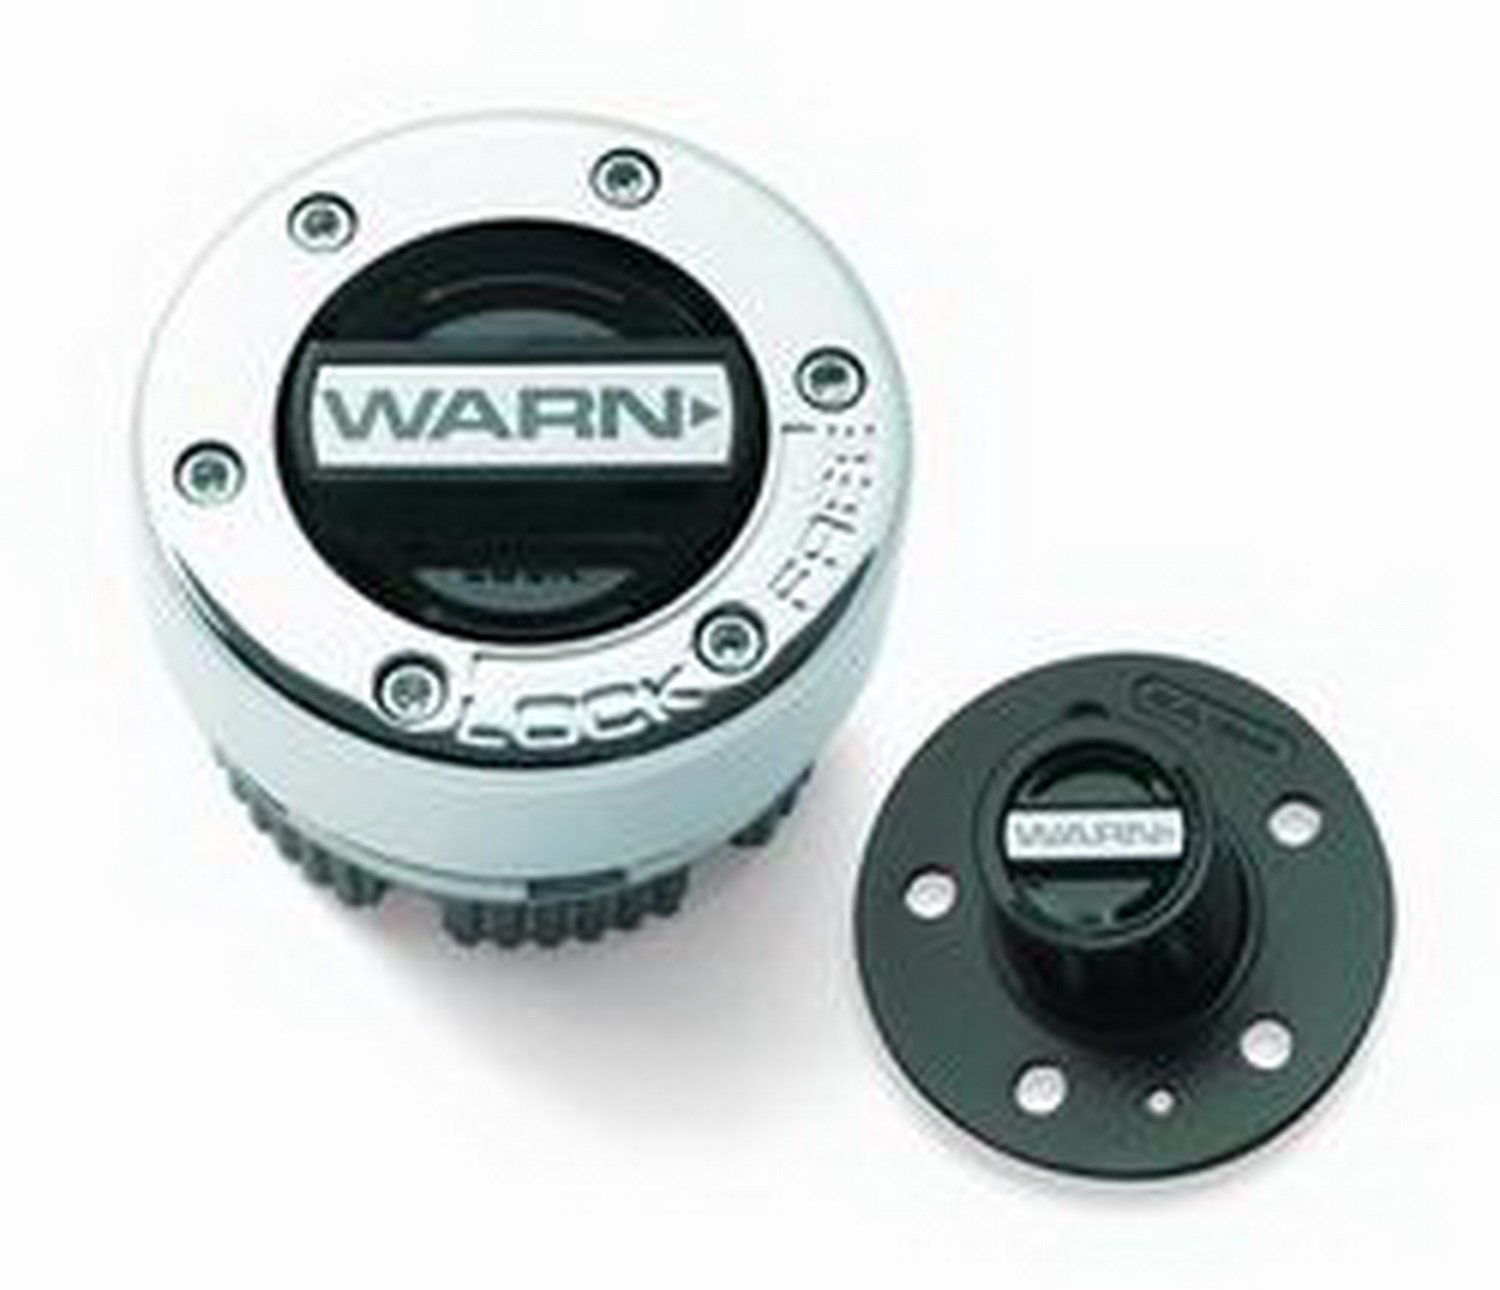 Warn 9790 Standard Manual Hub Kit Set Replacing Automatic 3 Hole Cap w/Manual